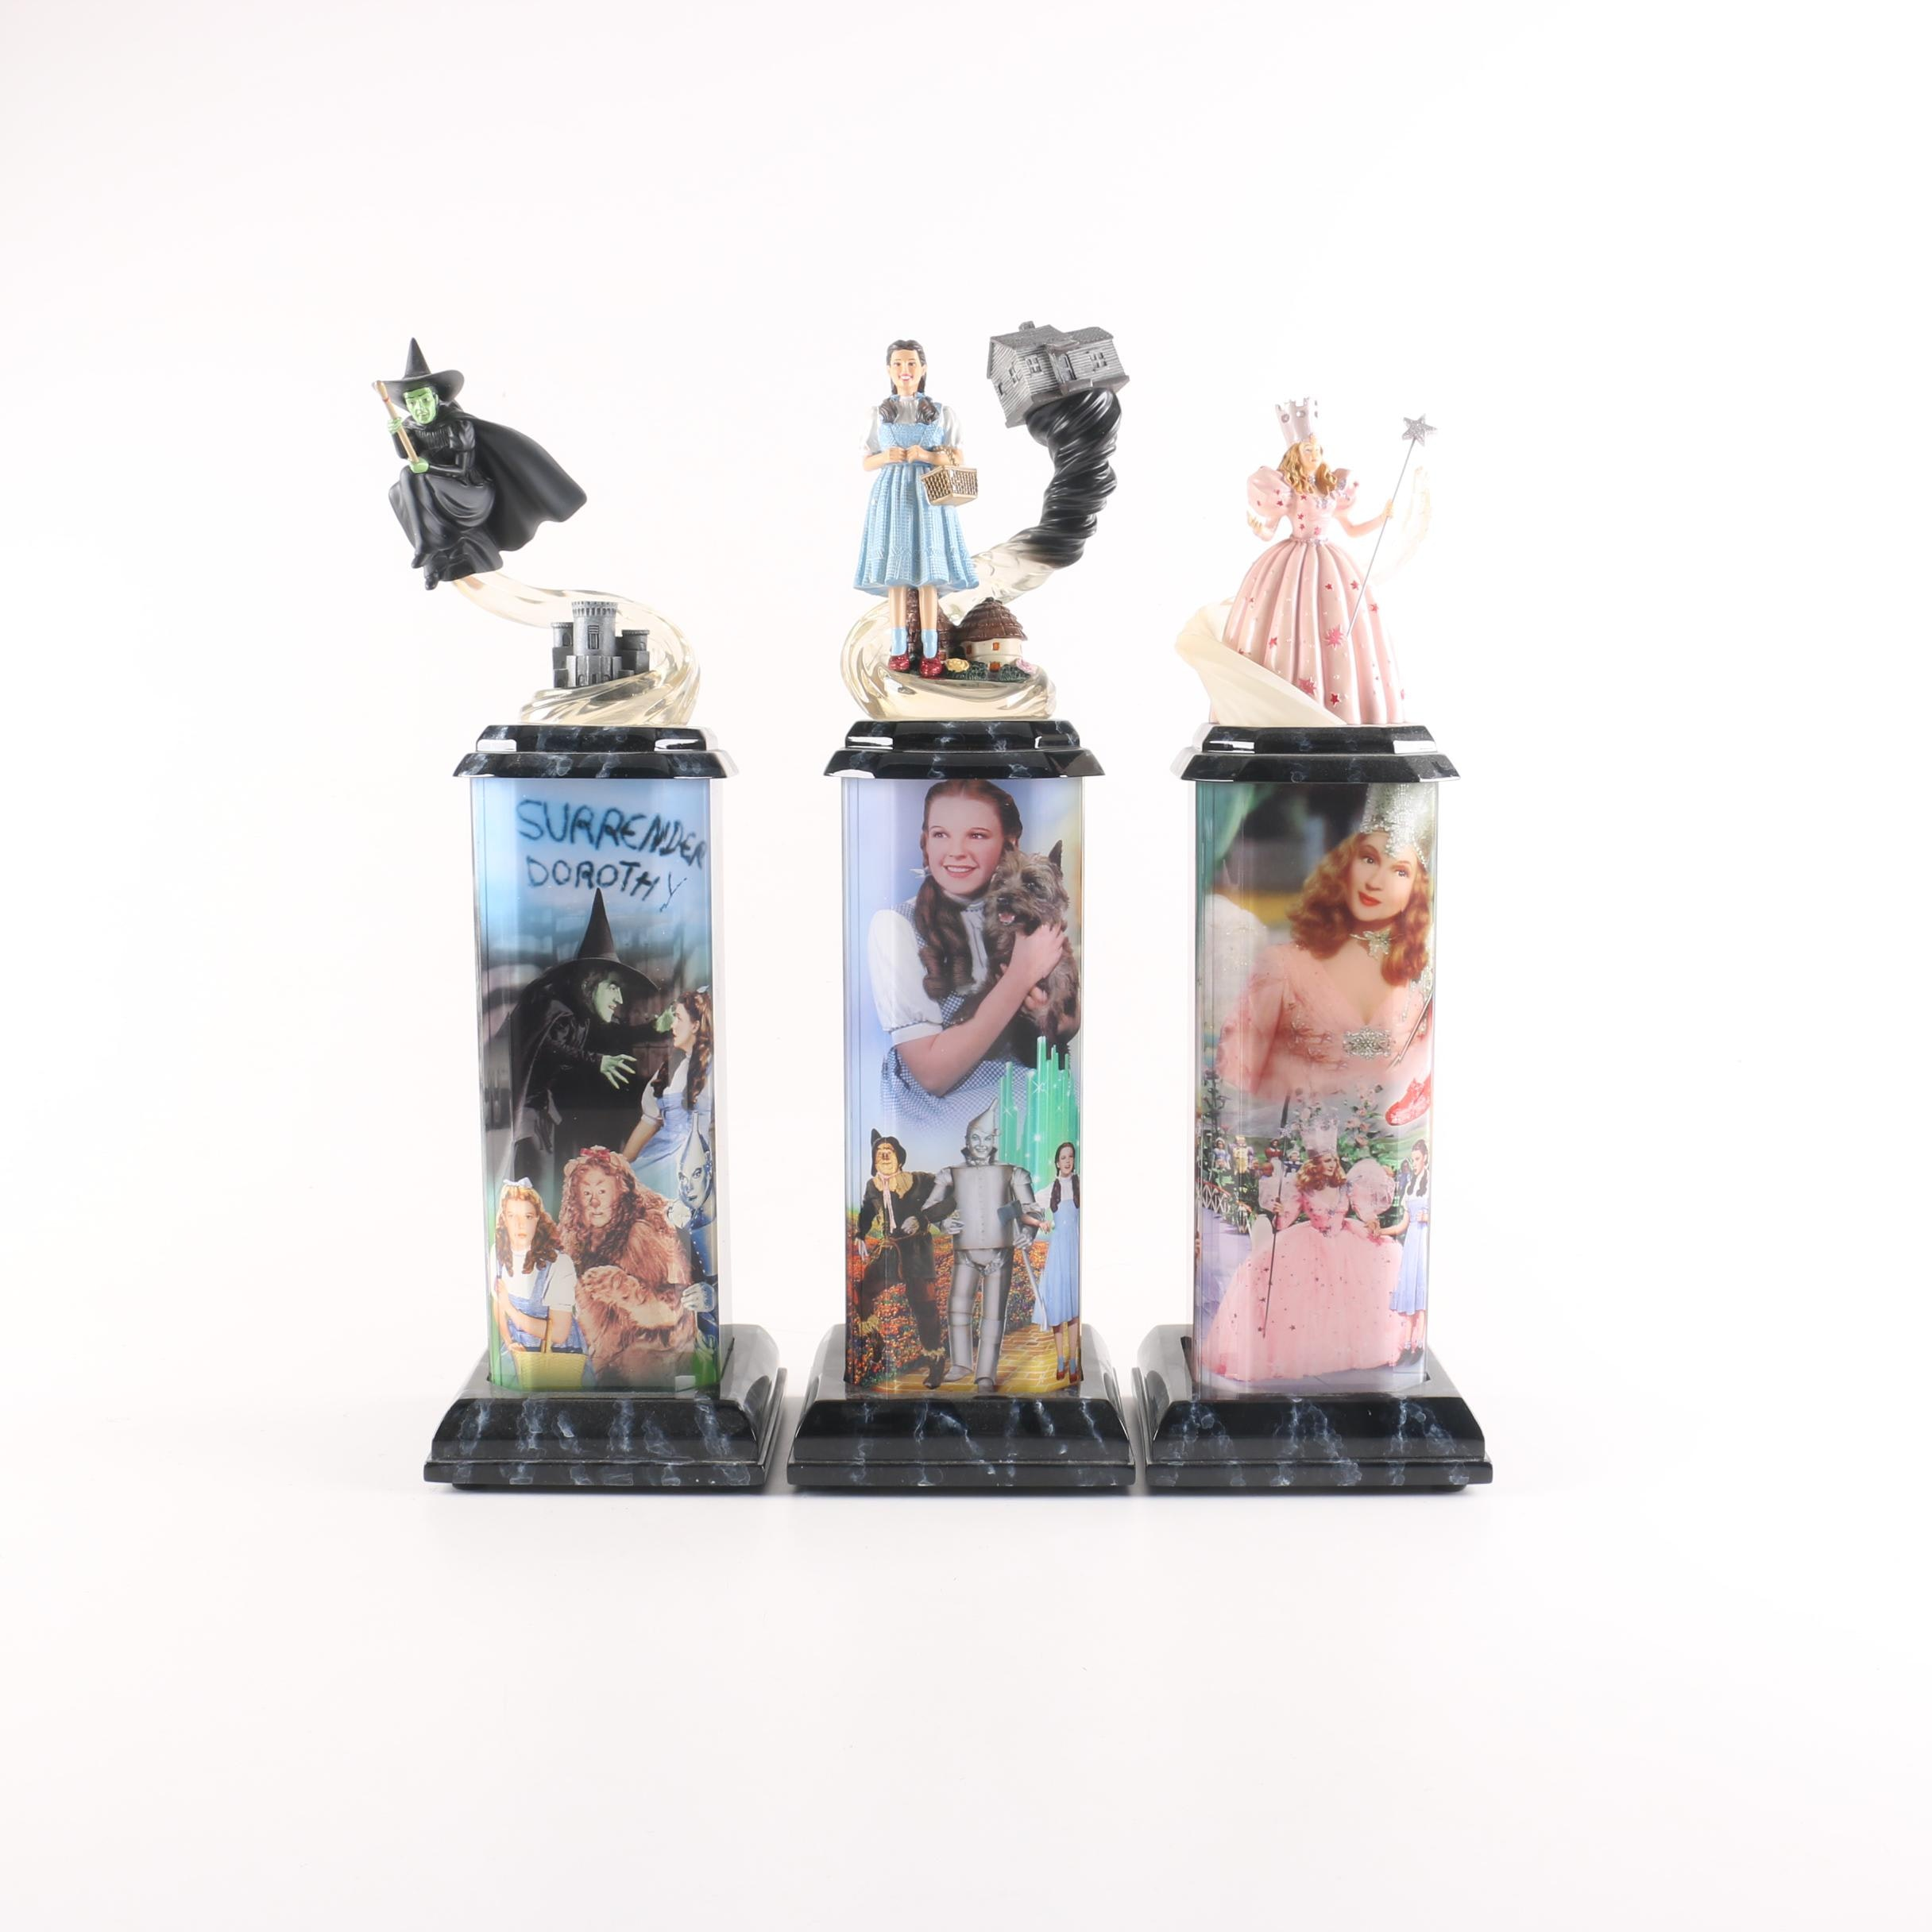 Limited Edition Bradford Exchange Lighted Wizard of Oz Figurines